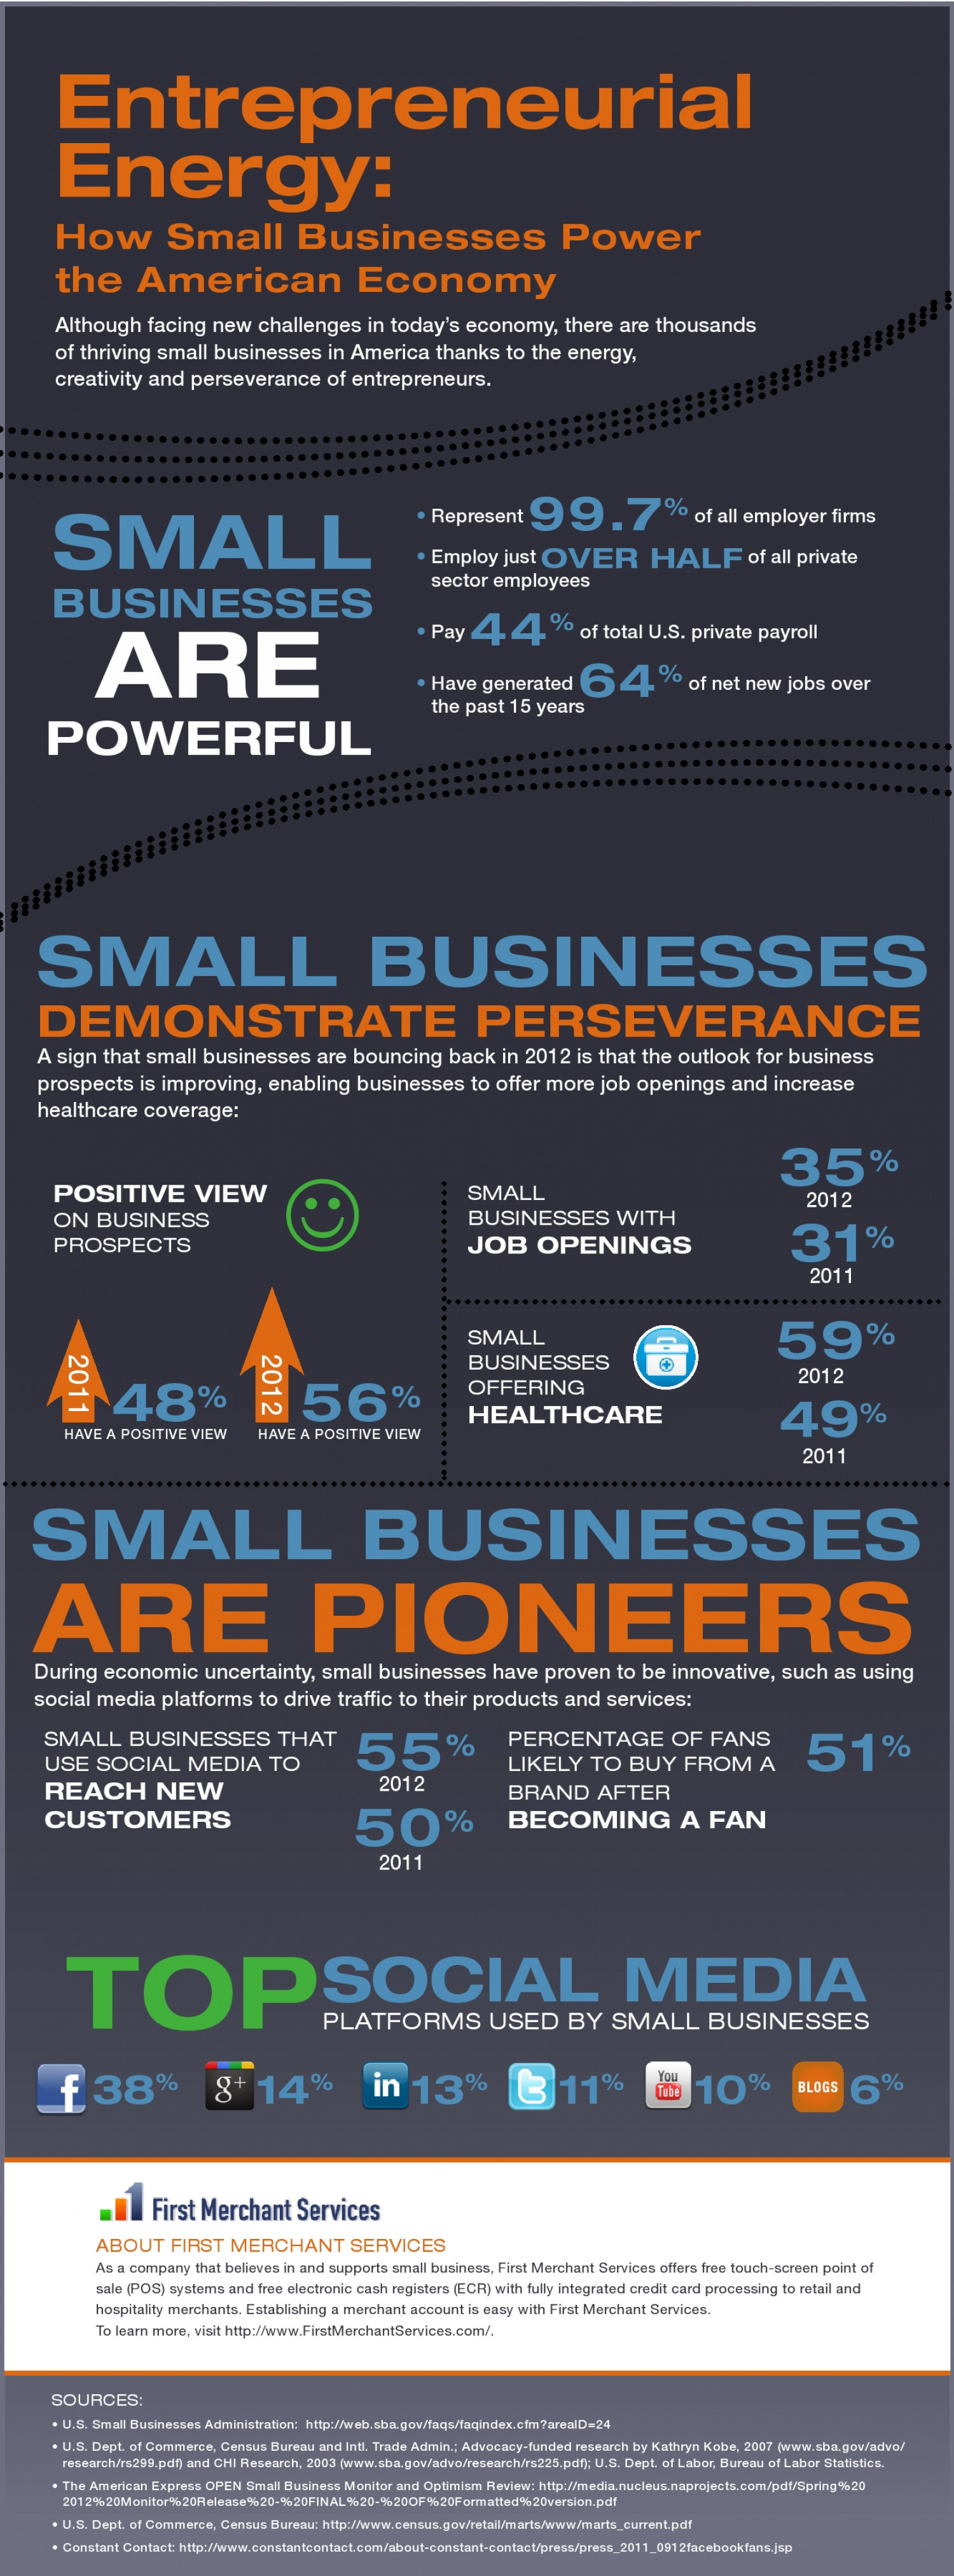 Entrepreneurial Energy - How Small Businesses Power the American Economy Infographic